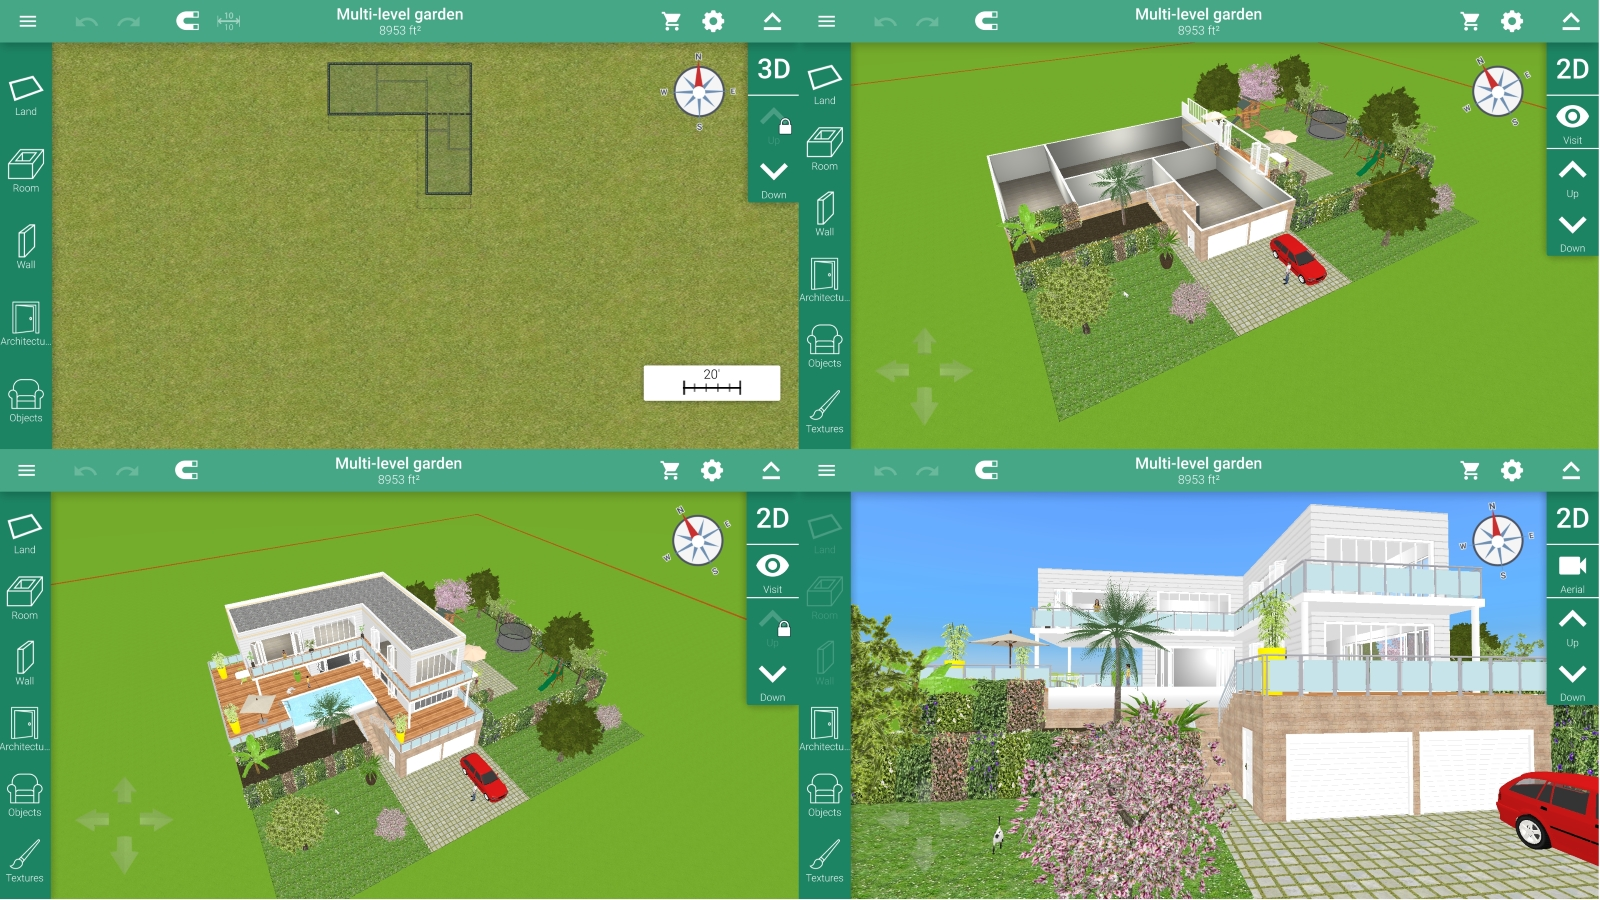 The 10 Best Home Design Apps for Android, iPhone and iPad ...